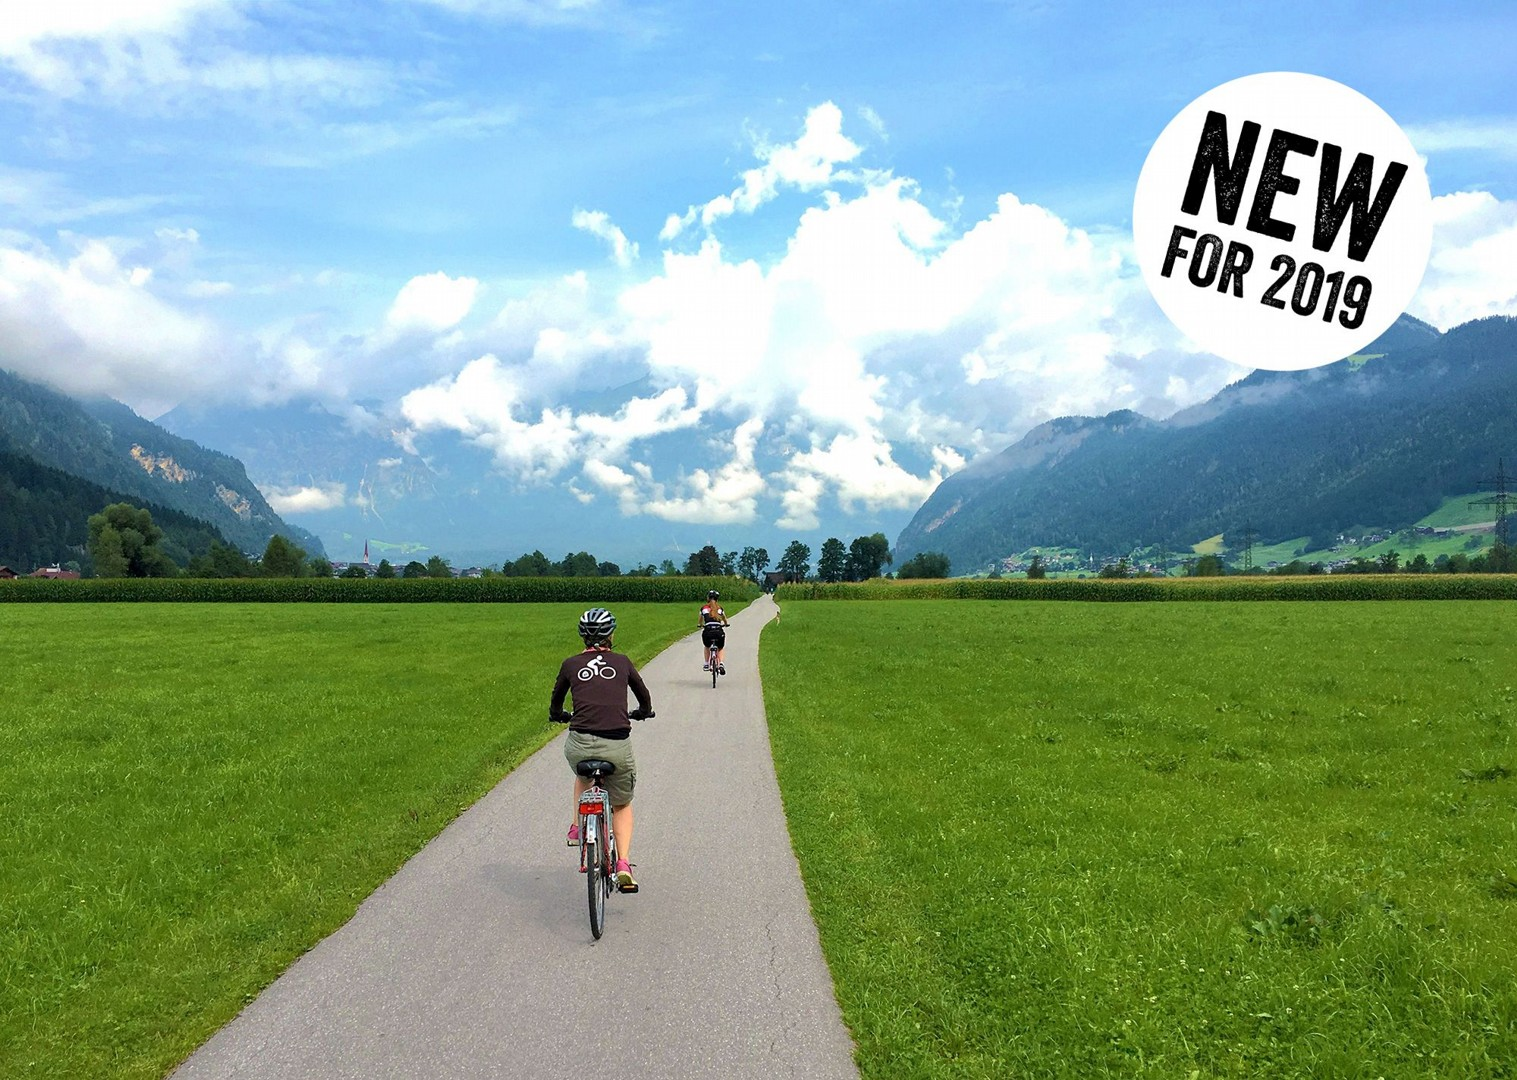 austria-tauern-valleys-leisure-cycling-holiday.jpg - Austria - Tauern Valleys - Self-Guided Leisure Cycling Holiday - Leisure Cycling